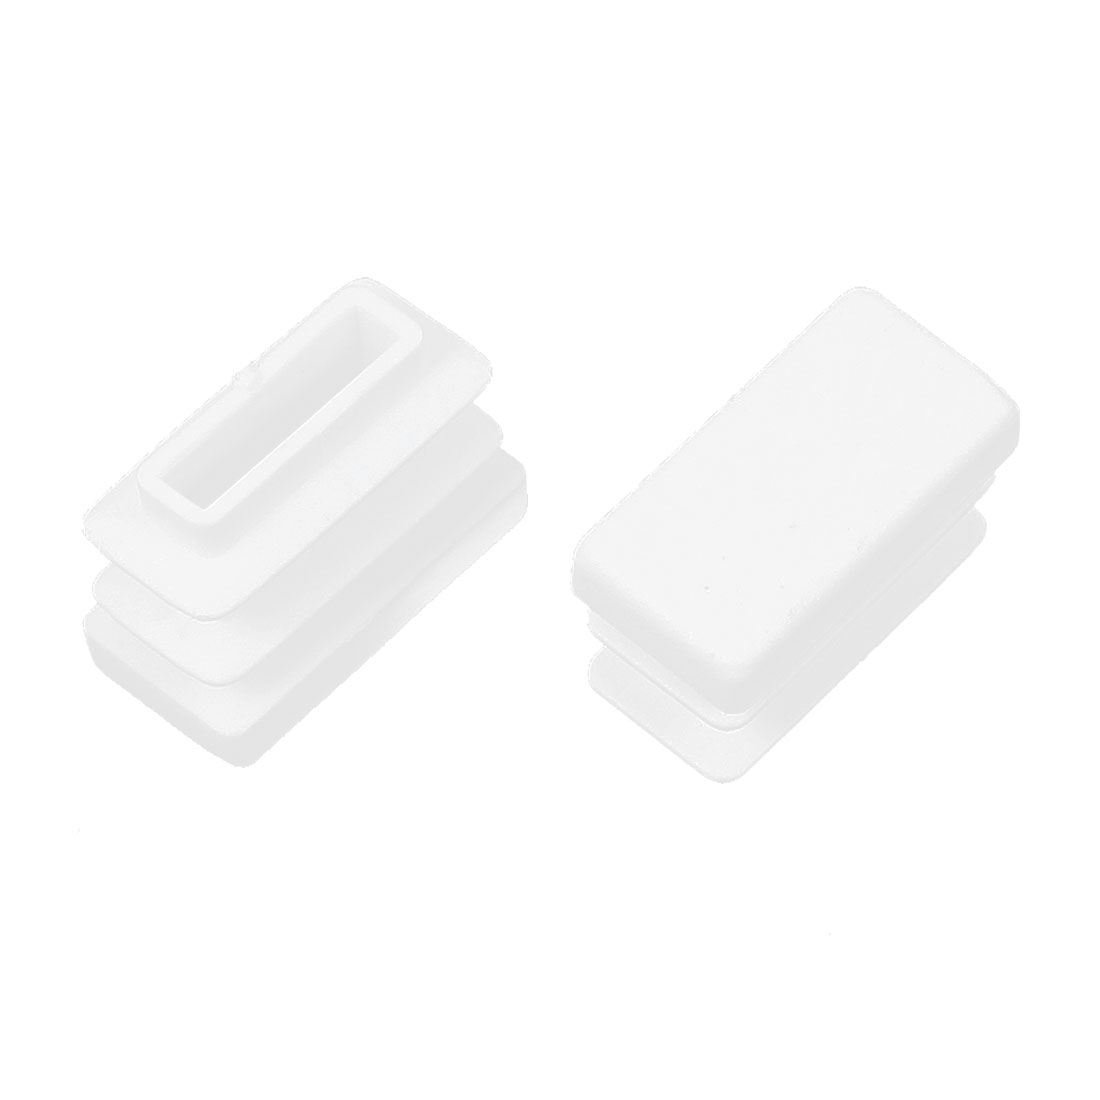 2 Pcs 10mm x 20mm Plastic Blanking End Caps Rectangle Tubing Tube Insert White